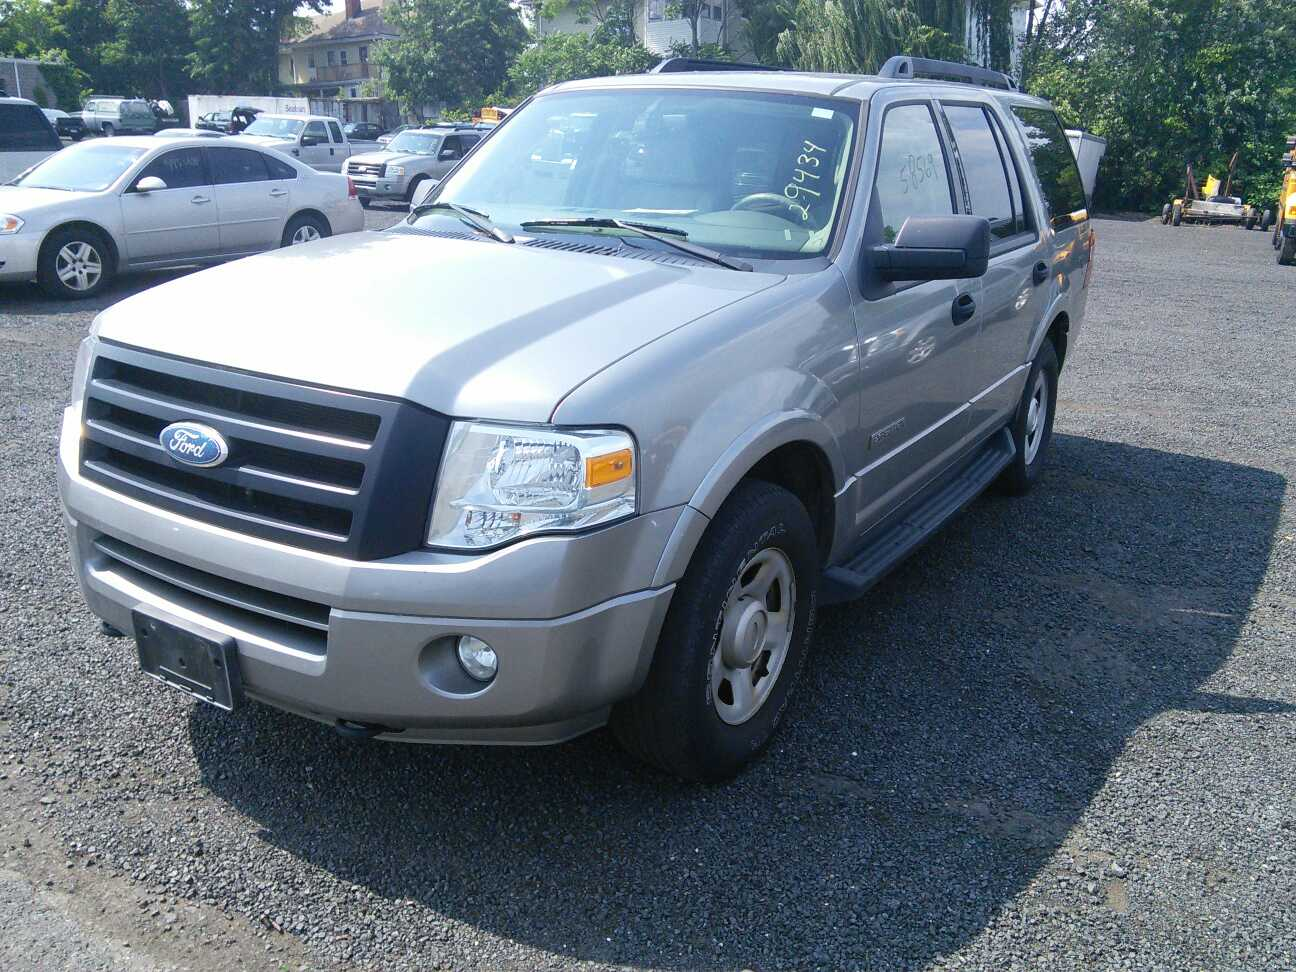 2008 Ford Expedition Xlt Valued At 10 575 Property